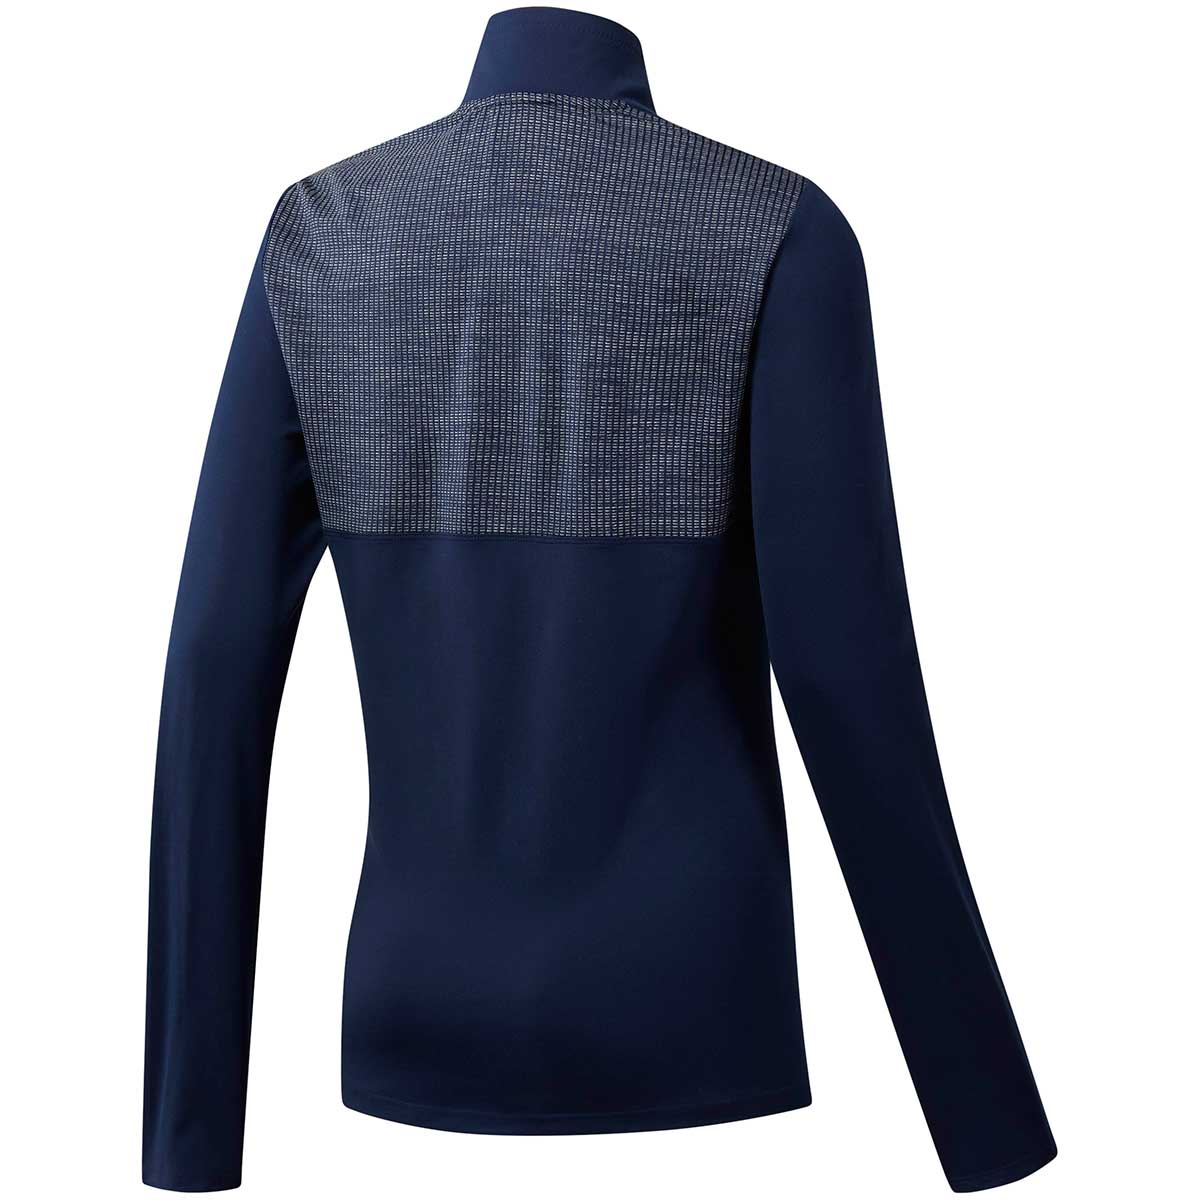 Adidas Women's Sport Layering 1/2 Zip Pullover - Night Indigo